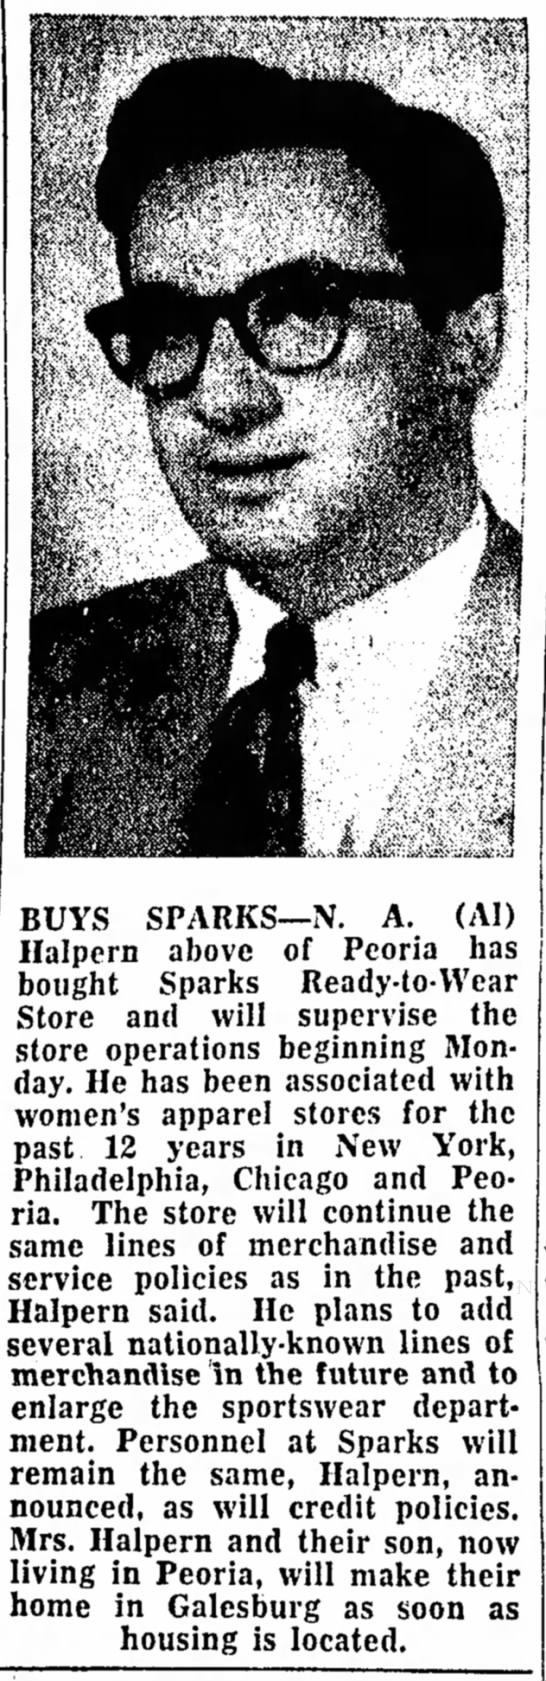 - BUYS SPARKS—N. A. (AI) Halpern above of Peoria...